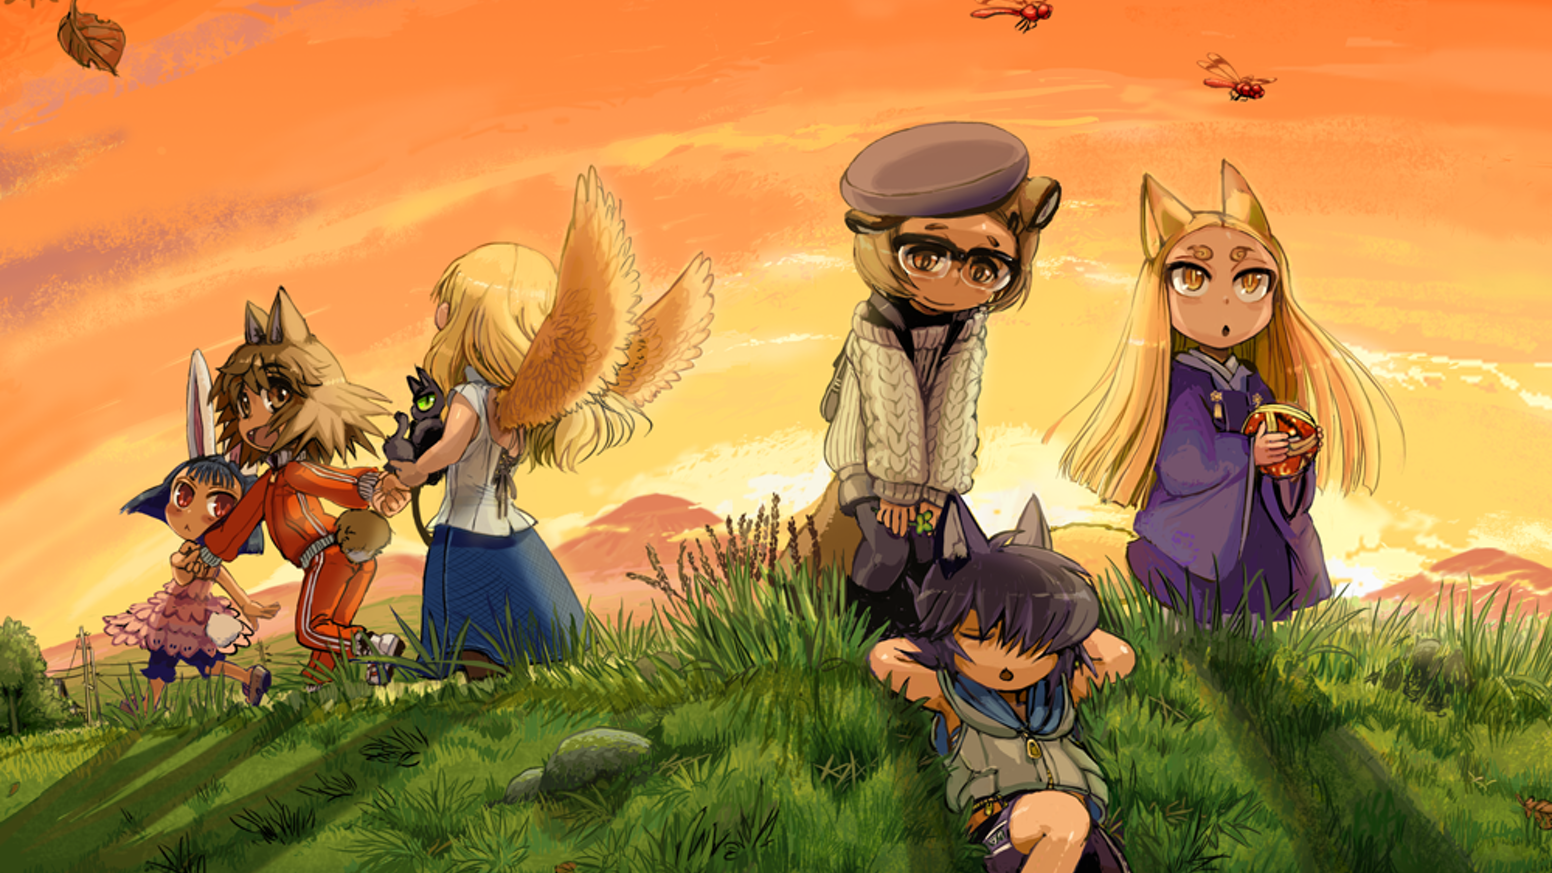 A heartwarming tabletop RPG from Japan about magical animals helping people.